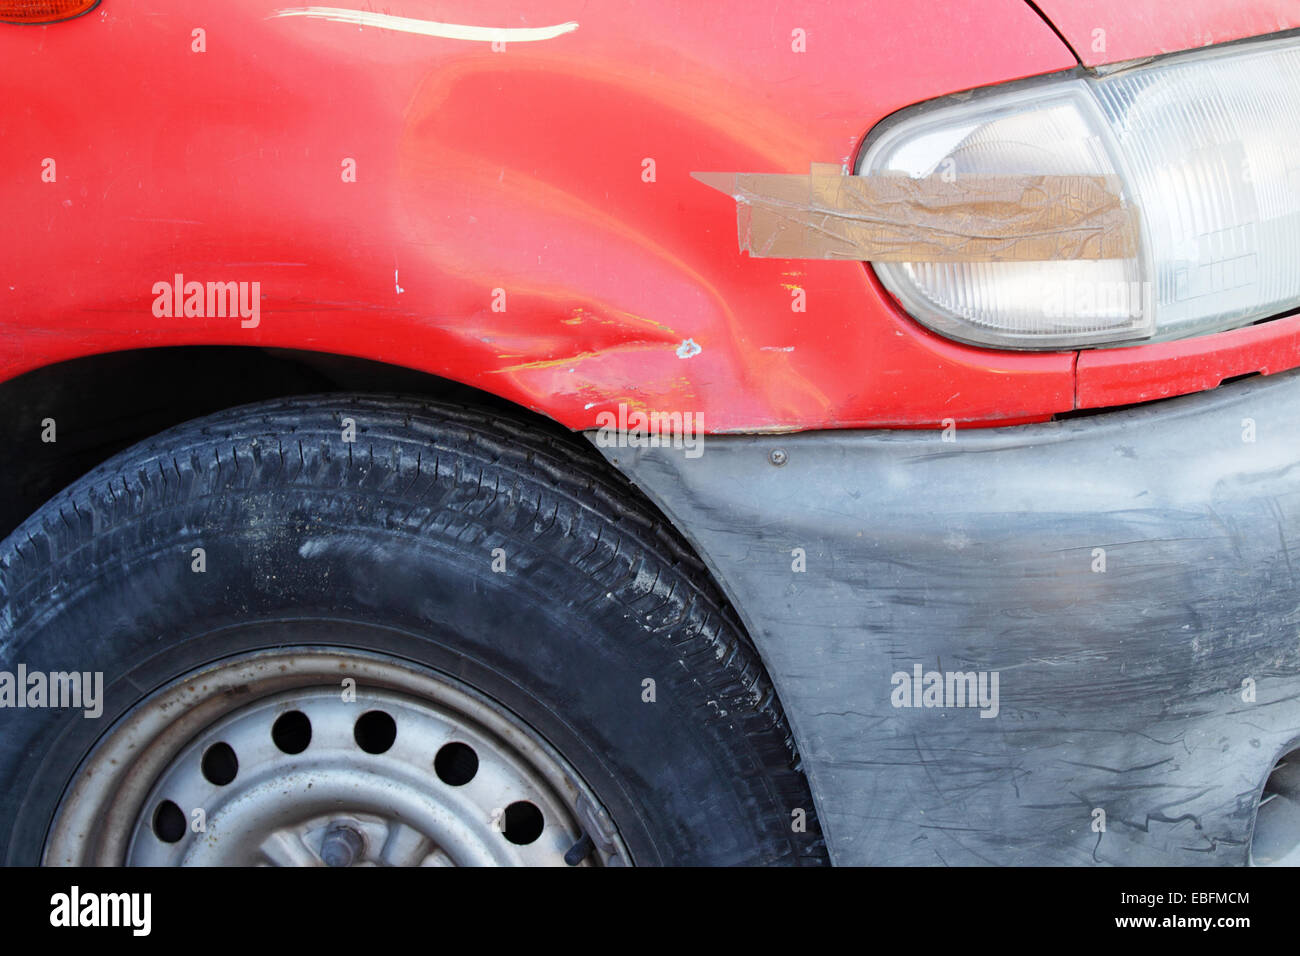 Old damaged car in bad condition close-up - Stock Image